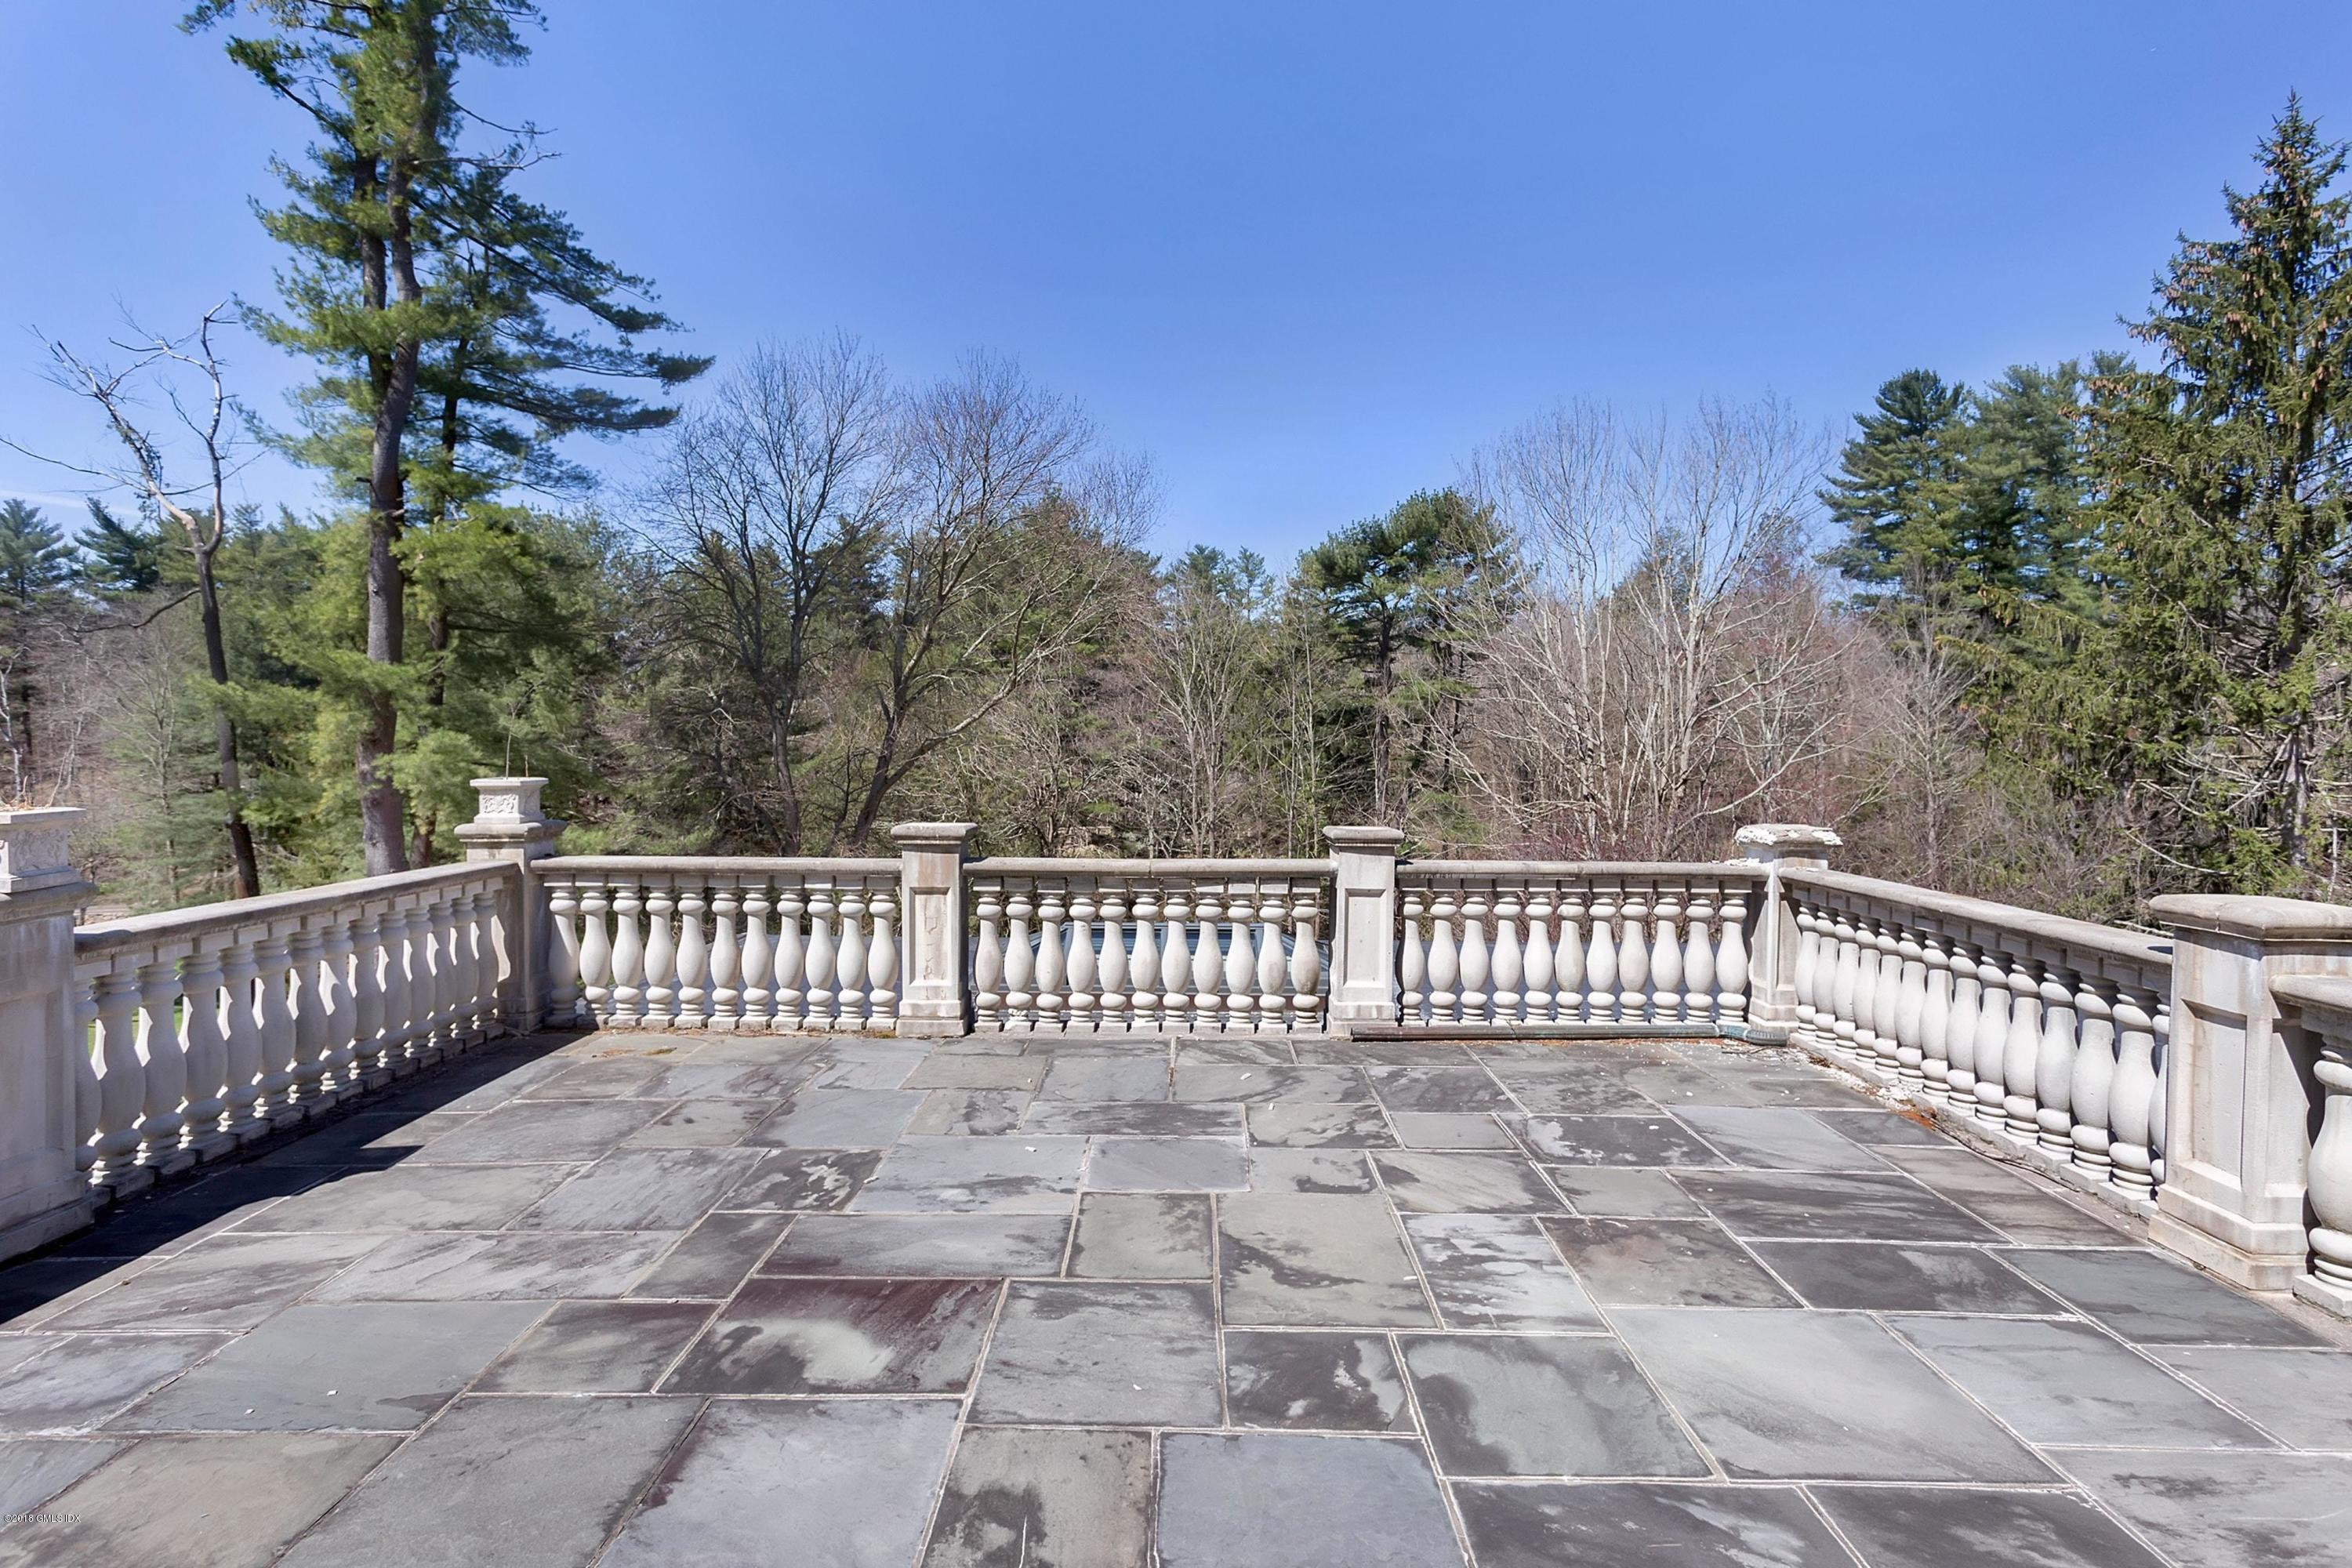 129 Dingletown Road,Greenwich,Connecticut 06830,5 Bedrooms Bedrooms,4 BathroomsBathrooms,Single family,Dingletown,105228